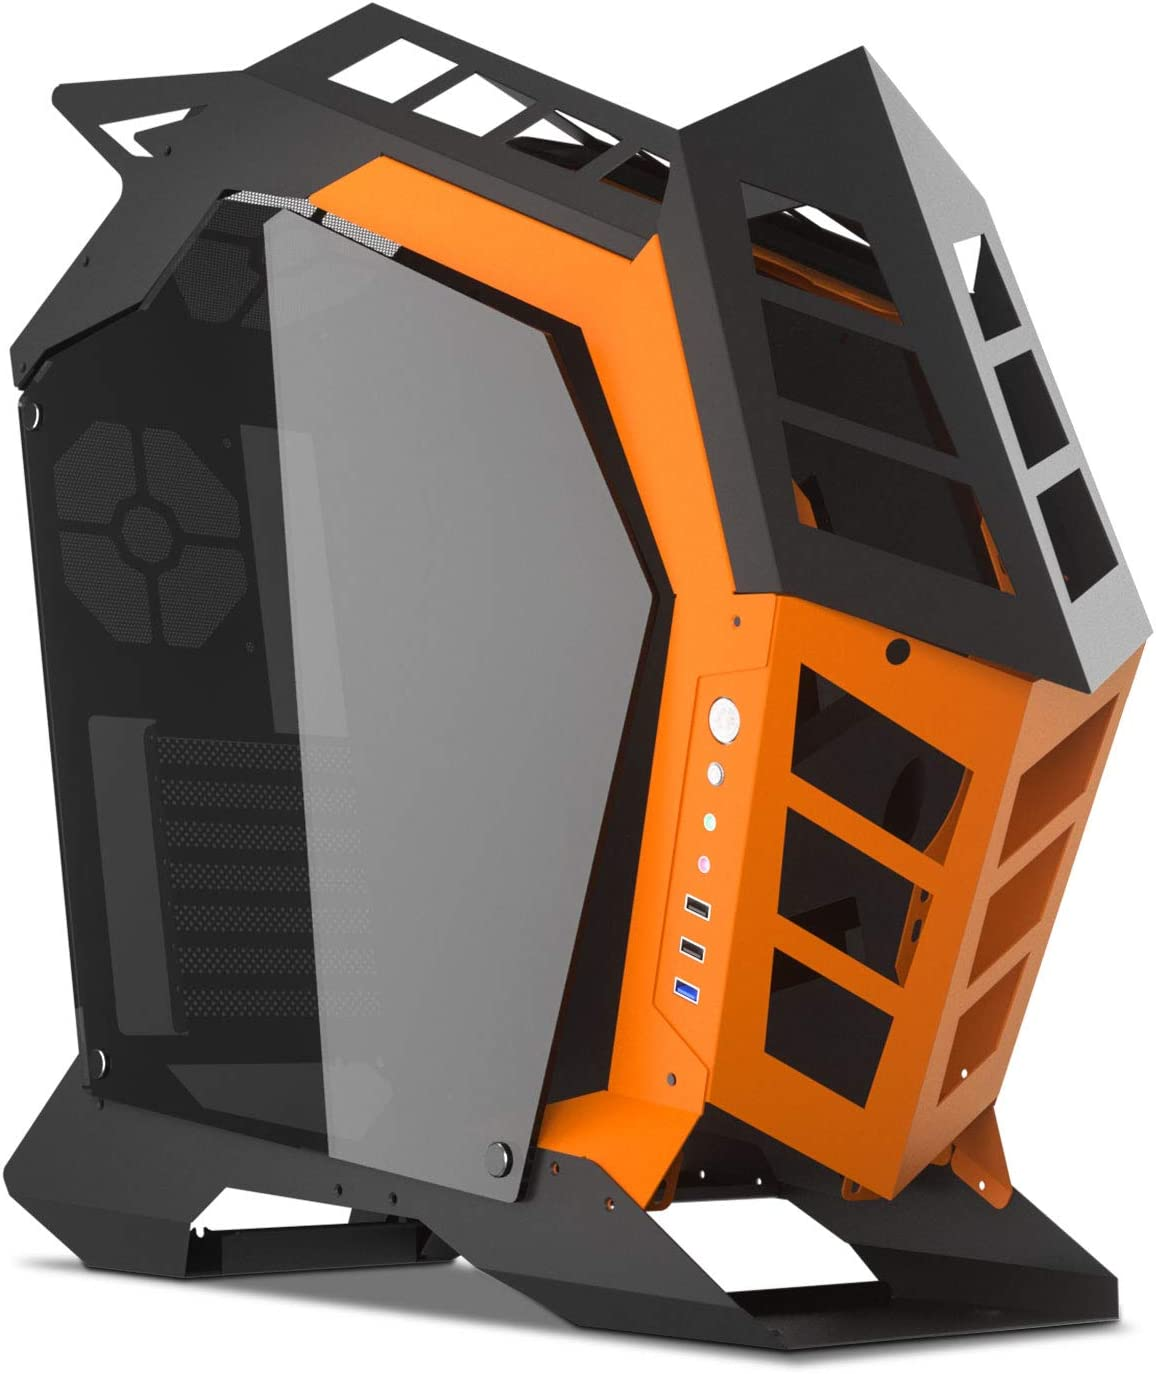 darkFlash Knight Open Frame ATX/Mini ITX/Micro ATX PC Case Mid Tower Aluminum Gaming Computer PC Case with Two Sides of Tempered Glass